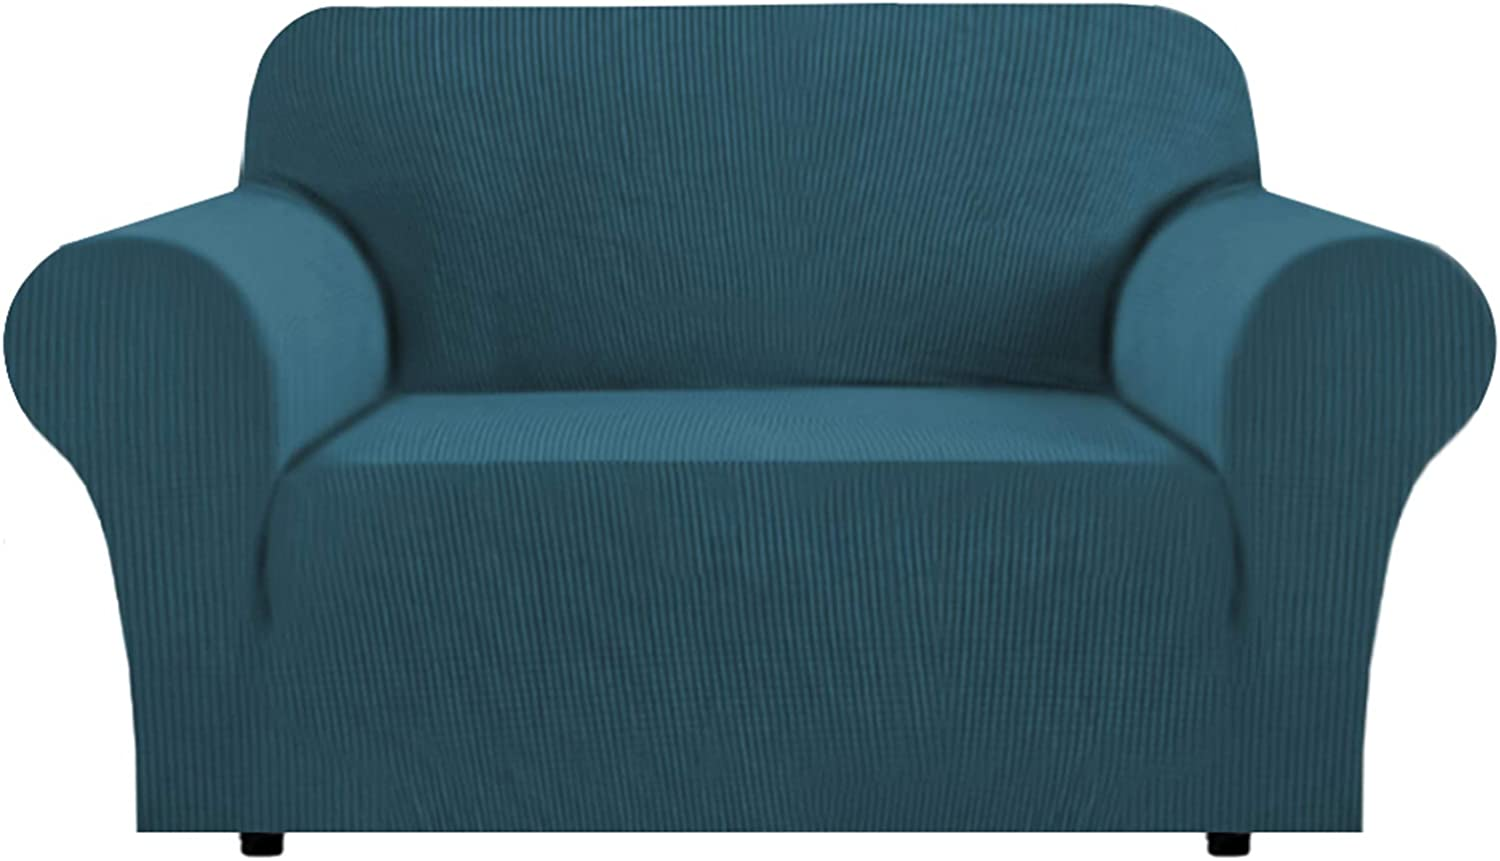 1 Piece Furniture Cover for Loveseat Loveseat Slipcovers for 2 Cushions Sofa Rich Textured High Spandex Checked Pattern Loveseat Covers for Living Room, 2 Seater, Deep Teal